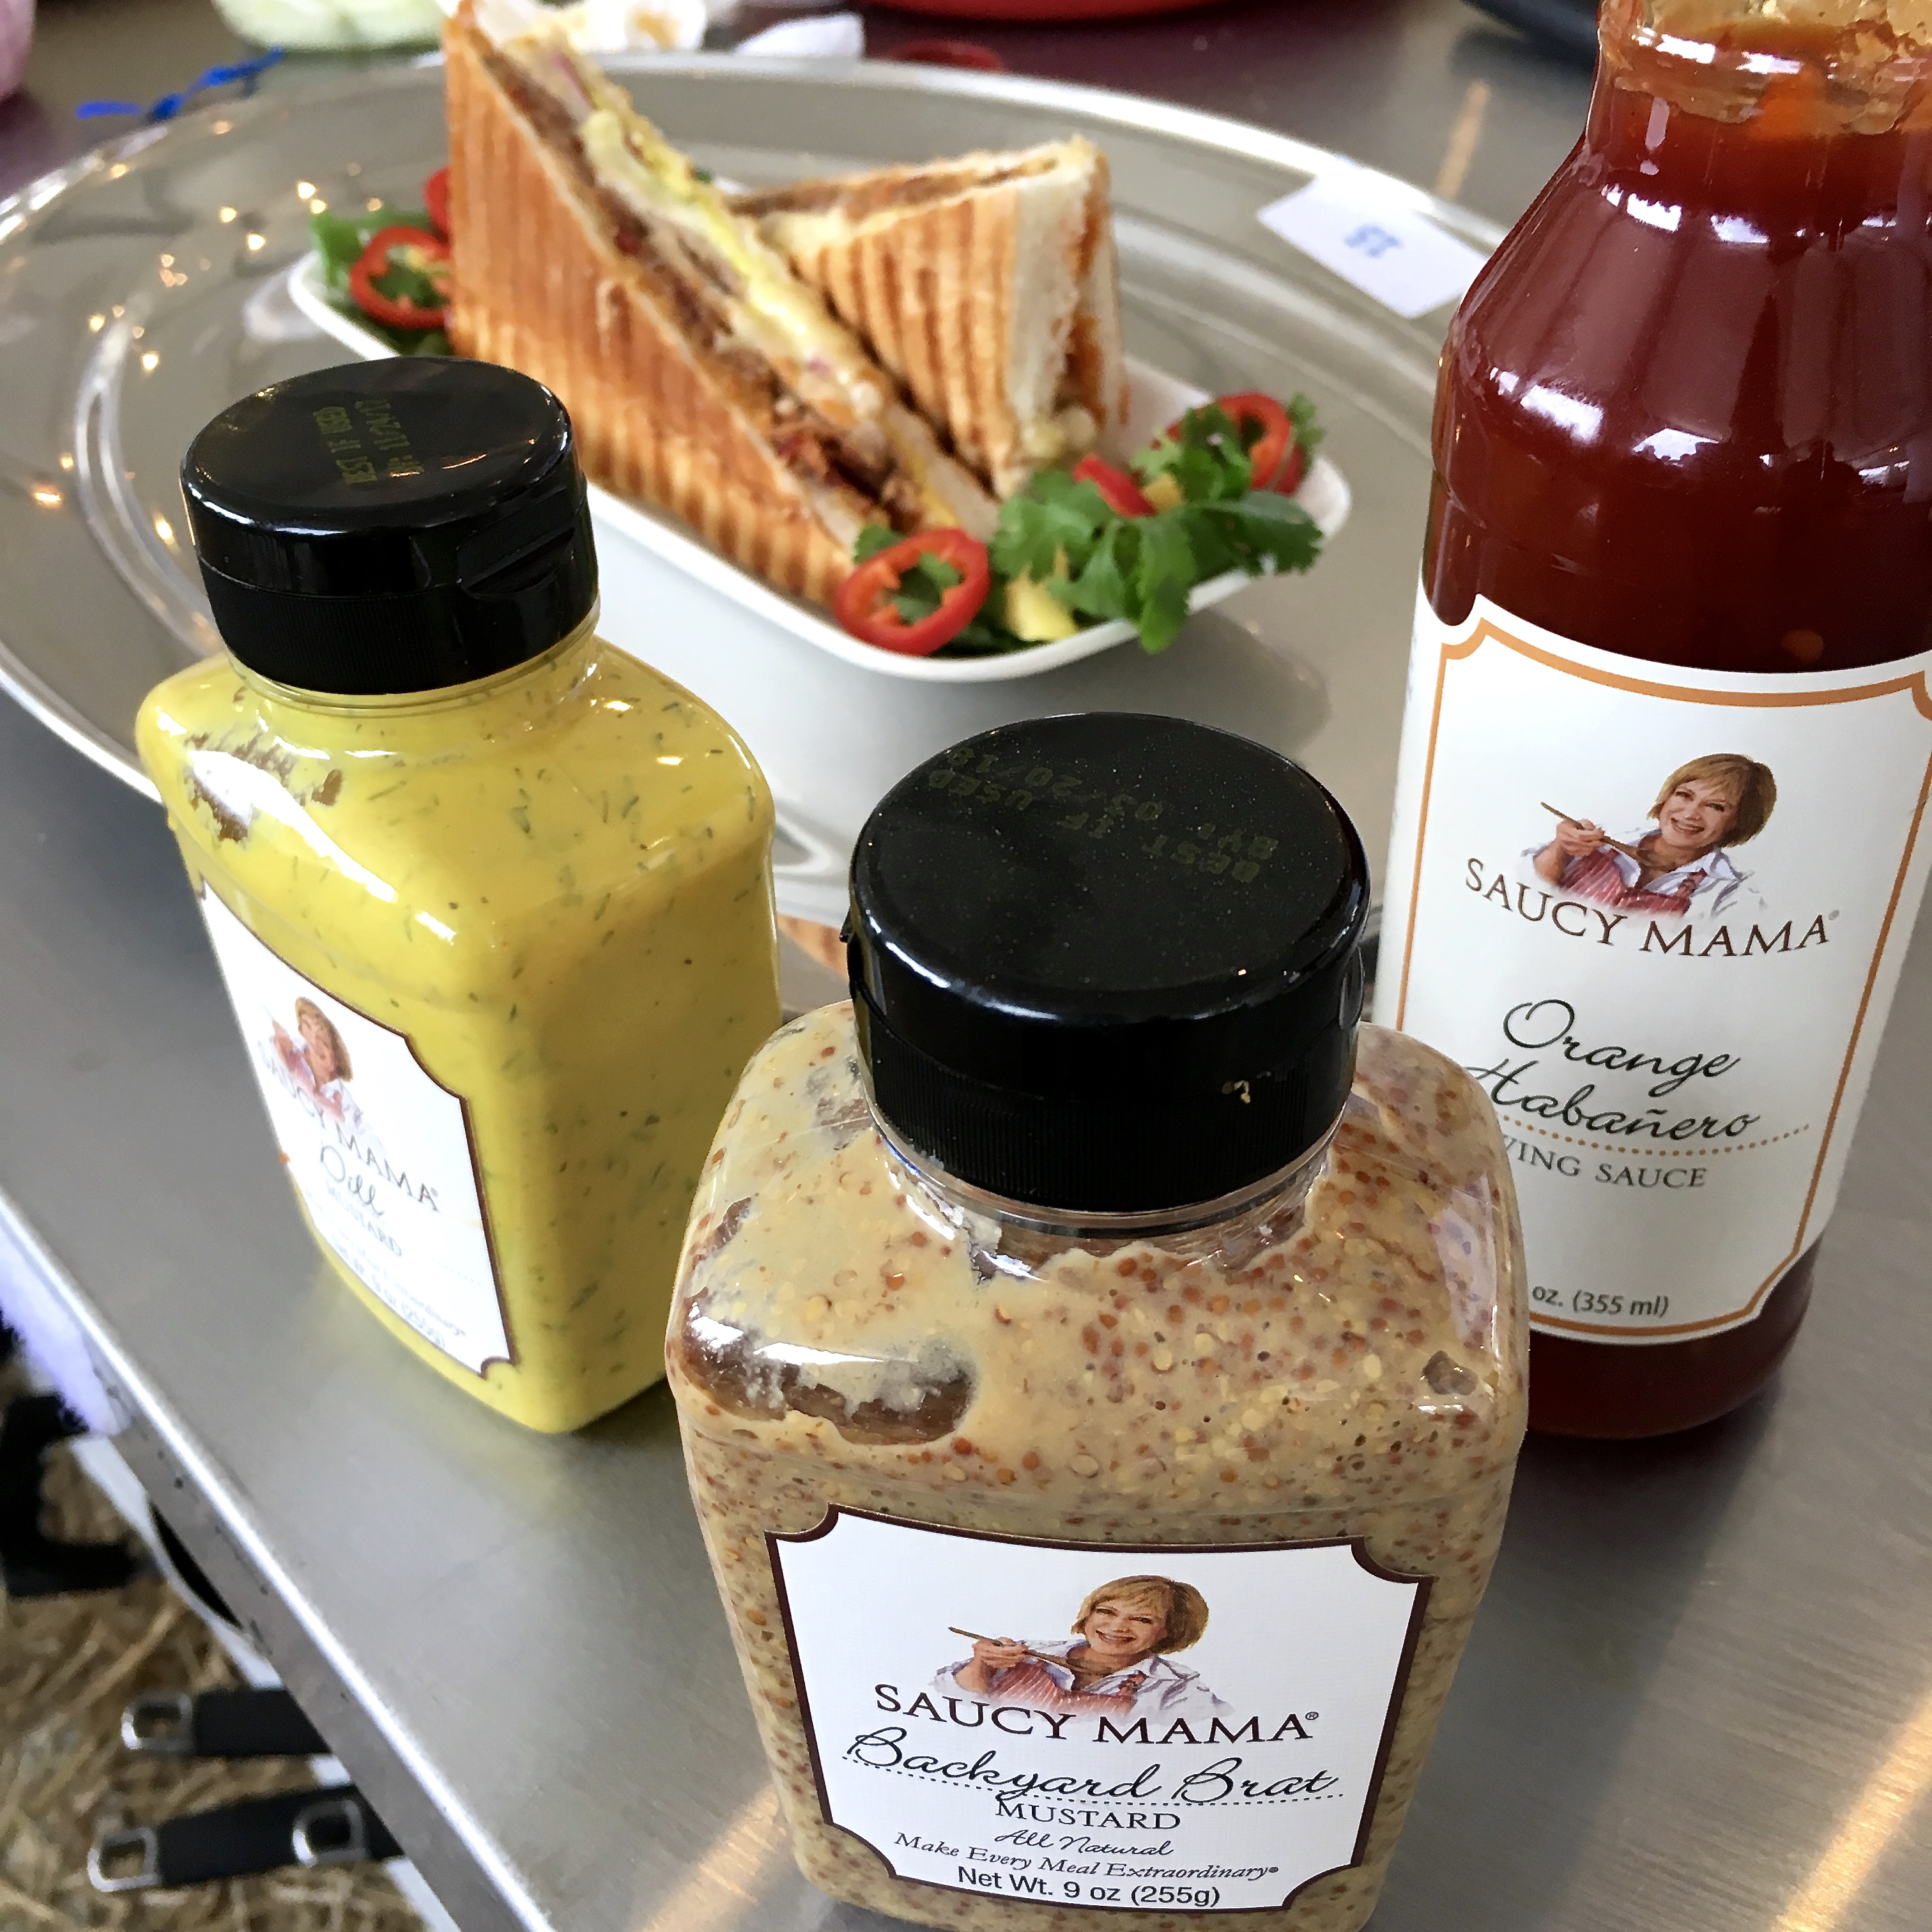 Saucy Mama products and cuban sandwich